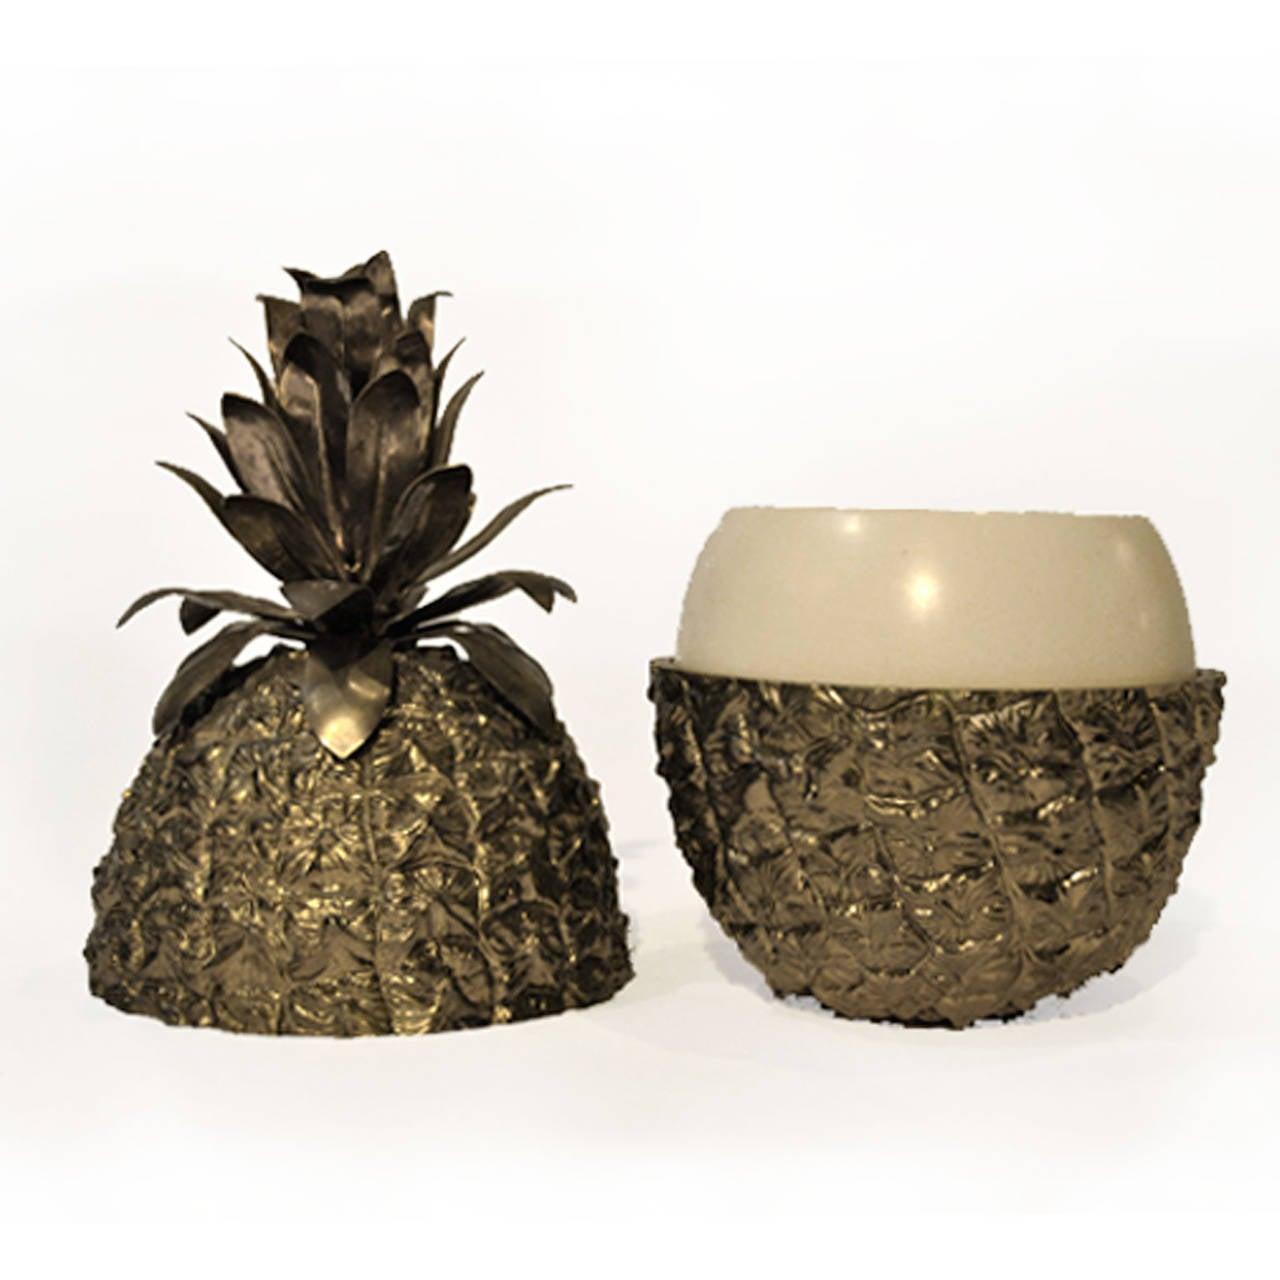 Pineapple Shaker by the Turnwald collection international, Italy 1970s. Measures: 18 x 35(H) cm.